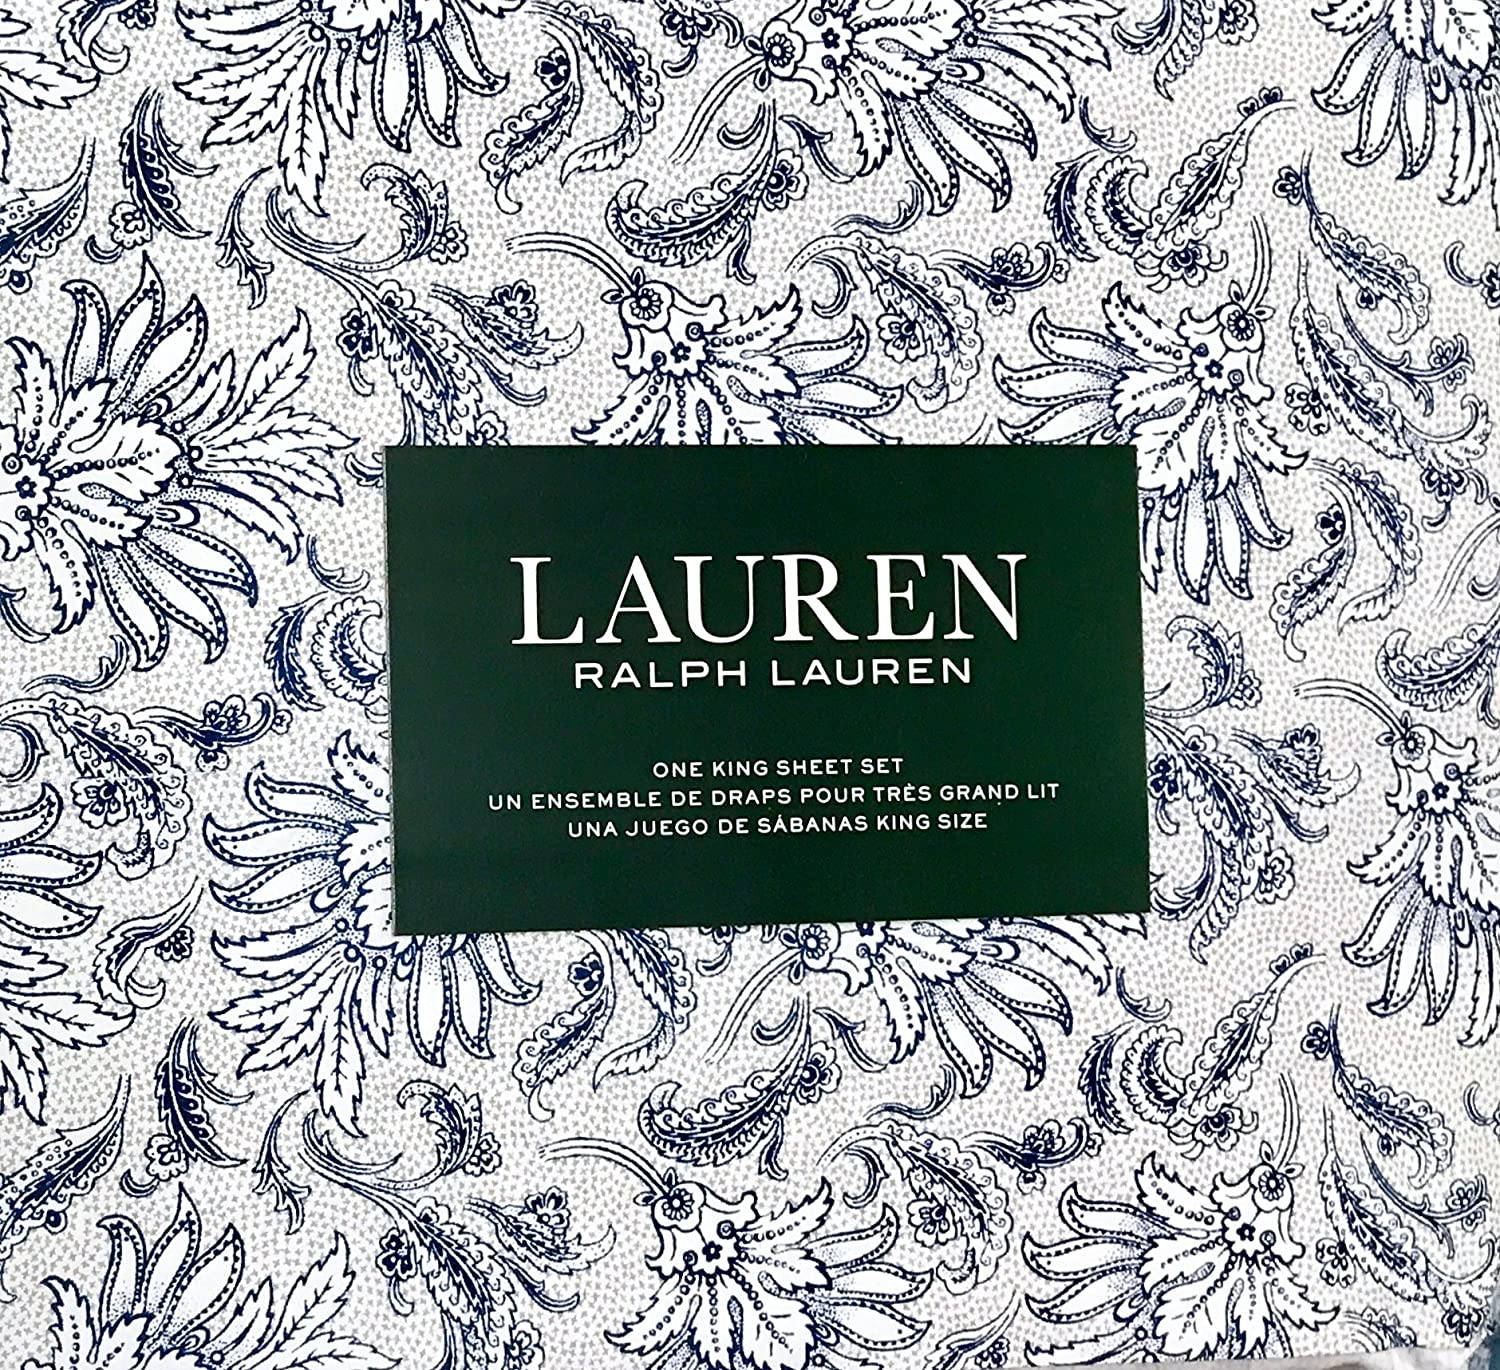 Ralph Lauren 4 Piece Sheet Set - Navy Blue Floral Pattern with Leaves on White with Grey Accents in Background 100% Cotton (King)